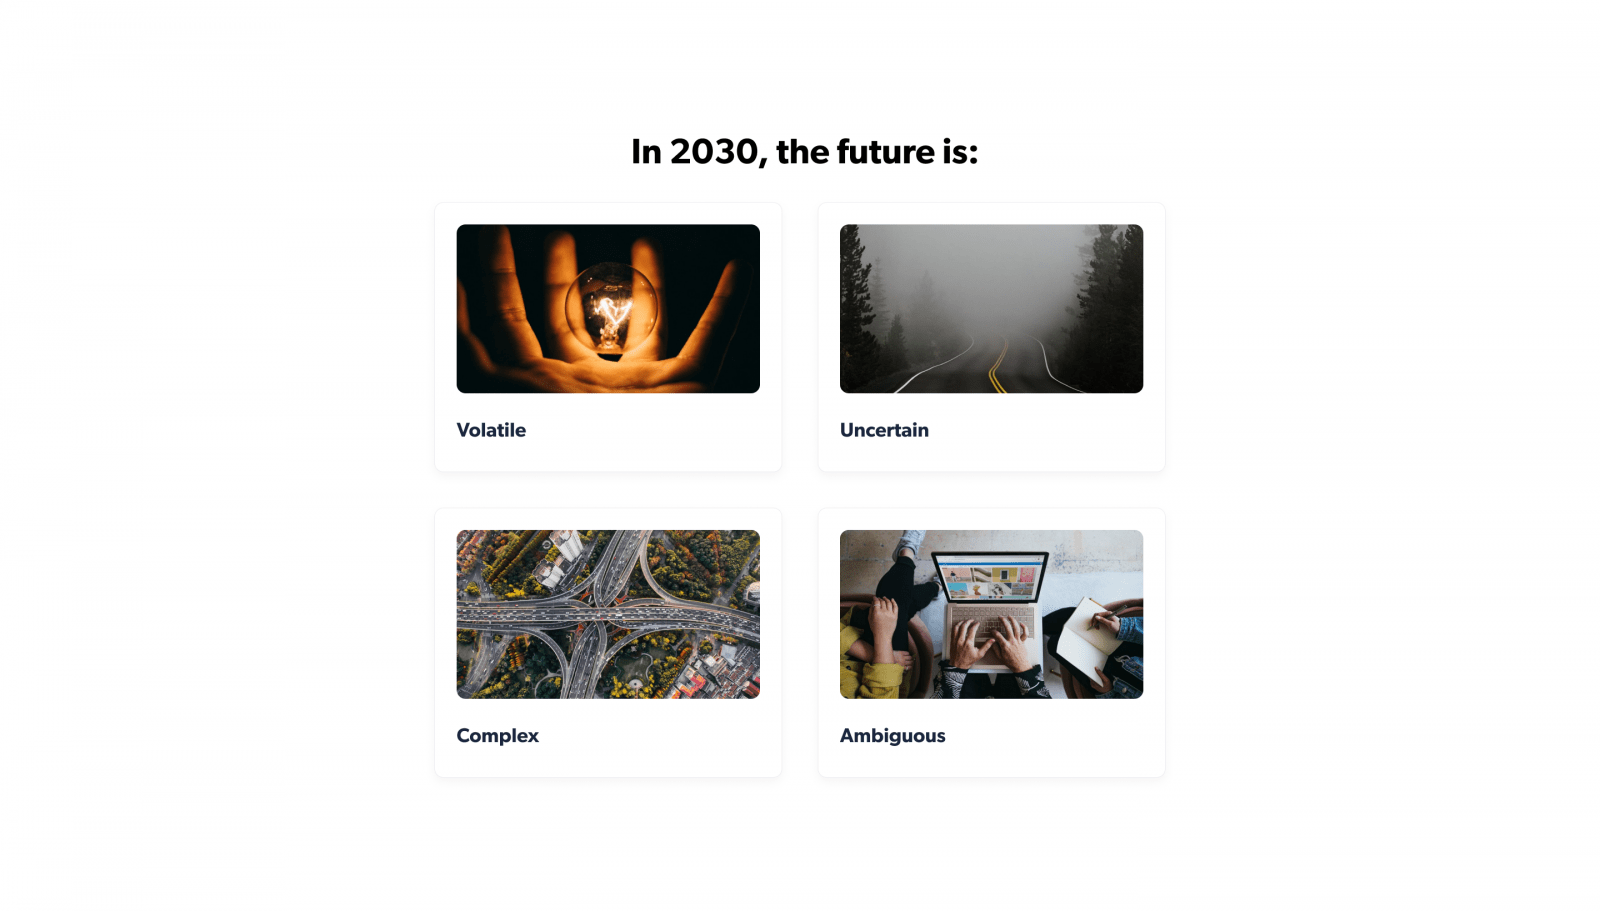 The future of workforce 2030